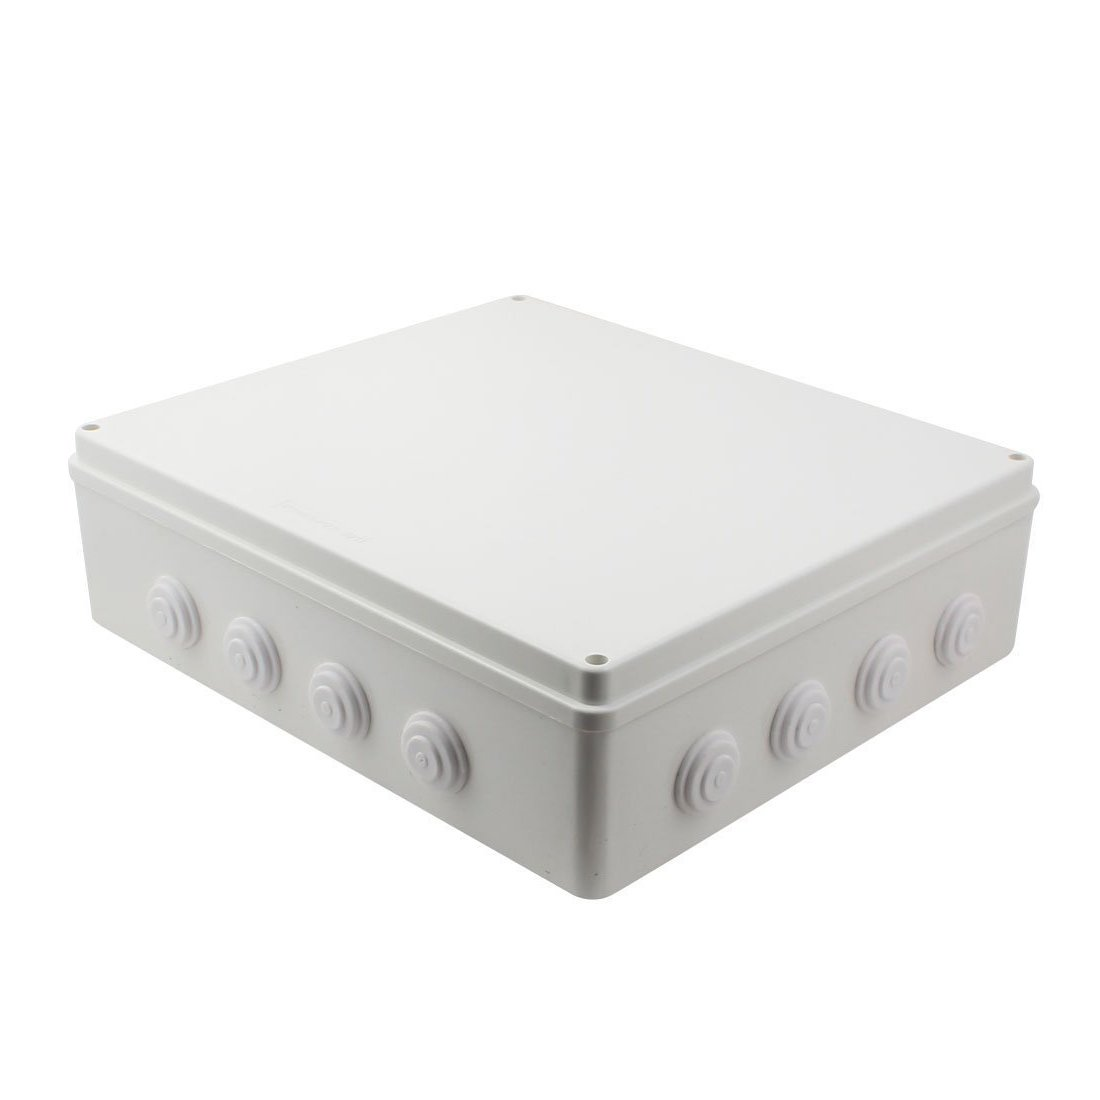 YXQ 400mmx350mmx120mm IP65 Waterproof Junction Box Electric Project DIY Case Power Outdoor Enclosure with Hole 15.7'' x 13.8'' x 4.7''